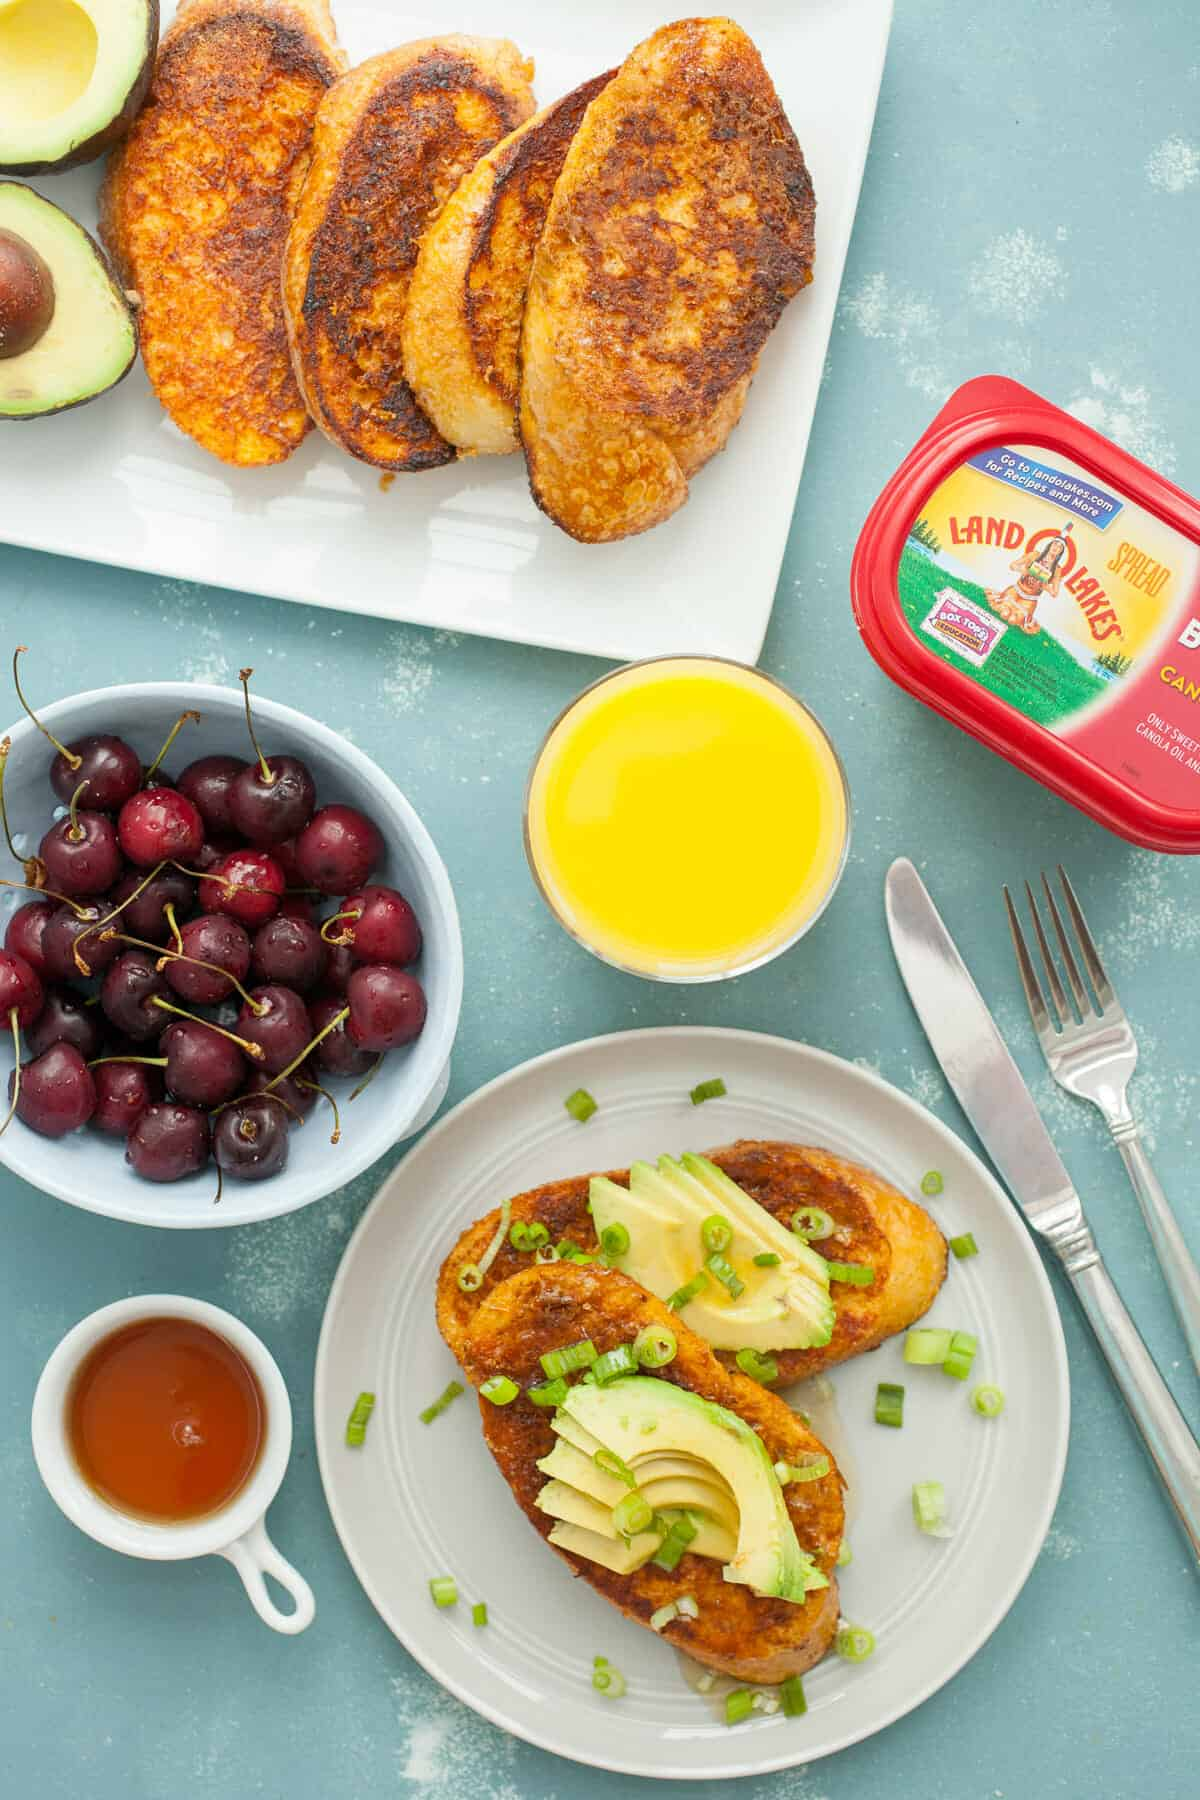 Savory Avocado French Toast: A new take on the classic french toast mashed up with avocado toast! It's the best version of savory and sweet! YUM! | macheesmo.com